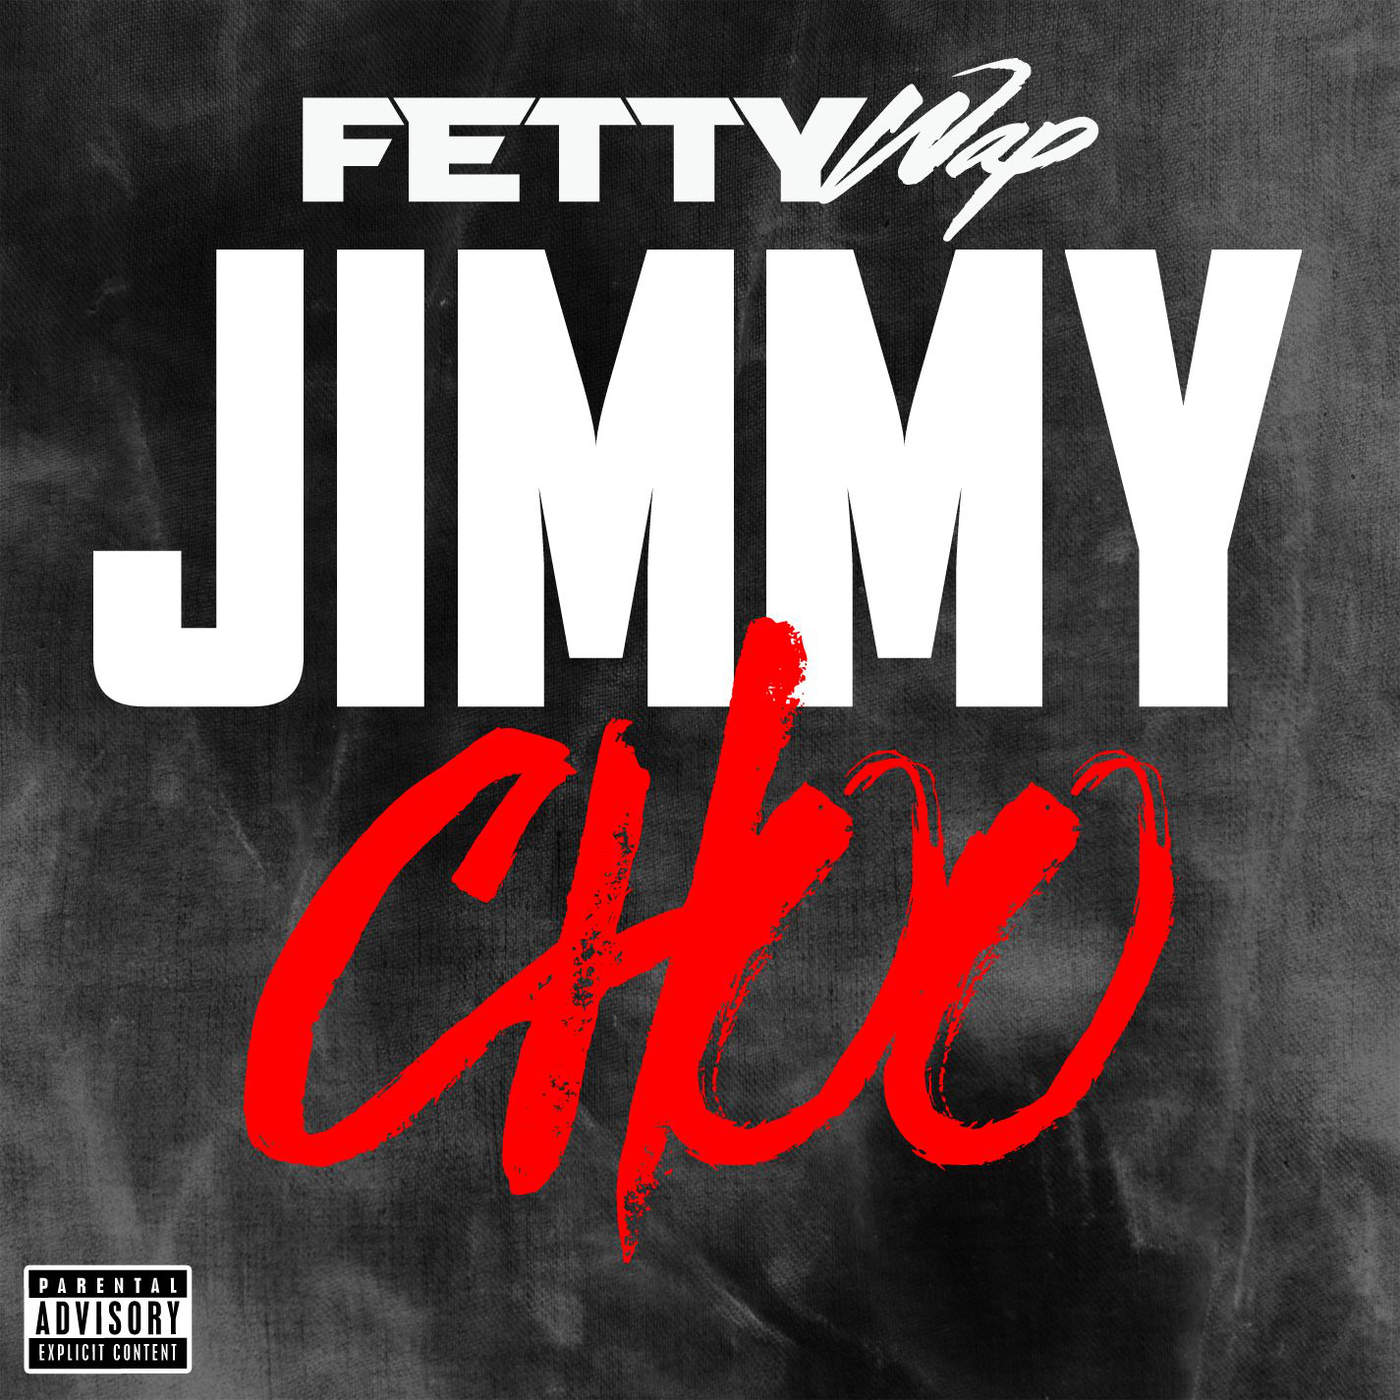 Fetty Wap - Jimmy Choo - Single Cover